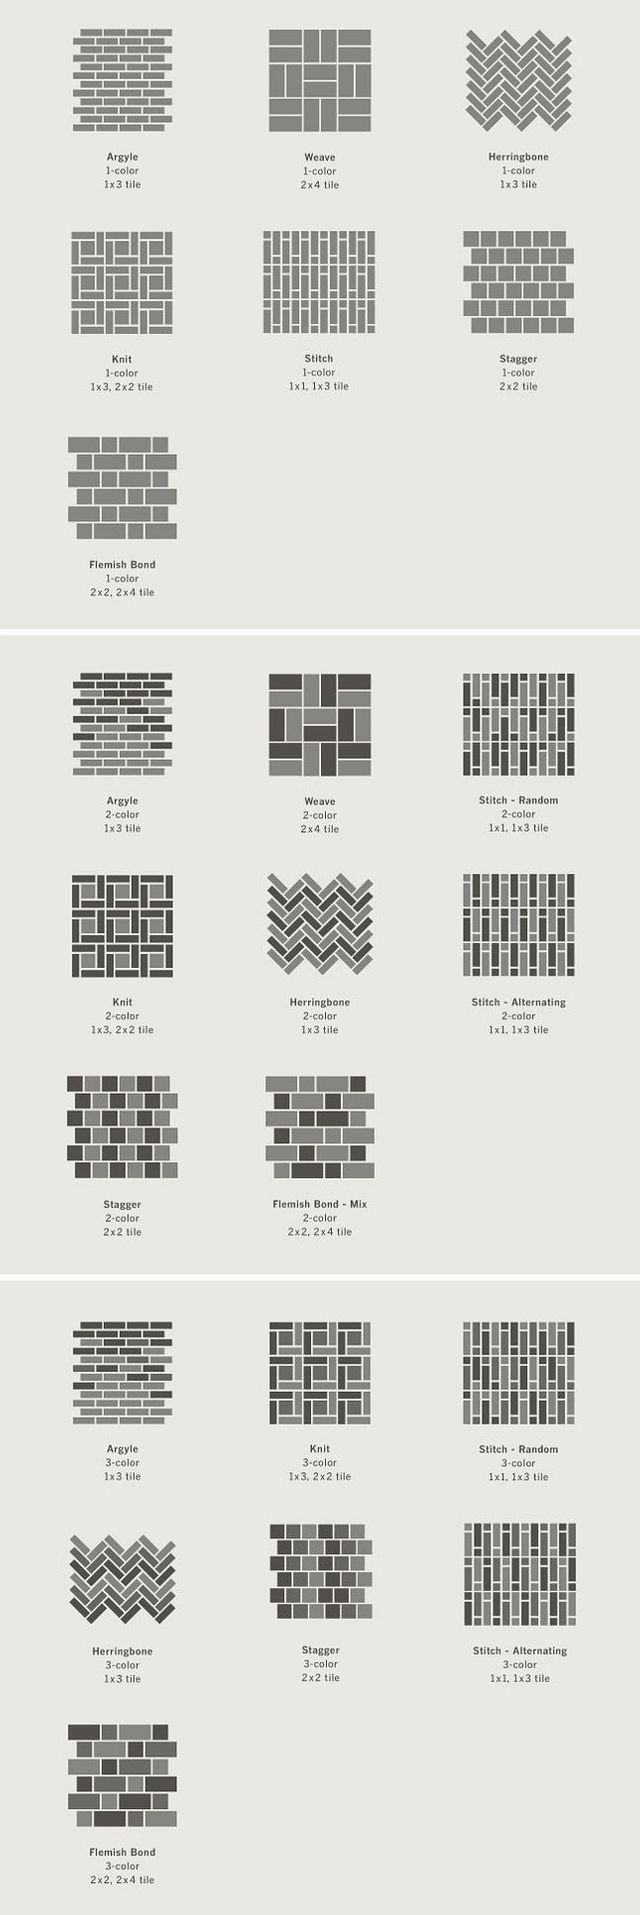 Tiling layout patterns